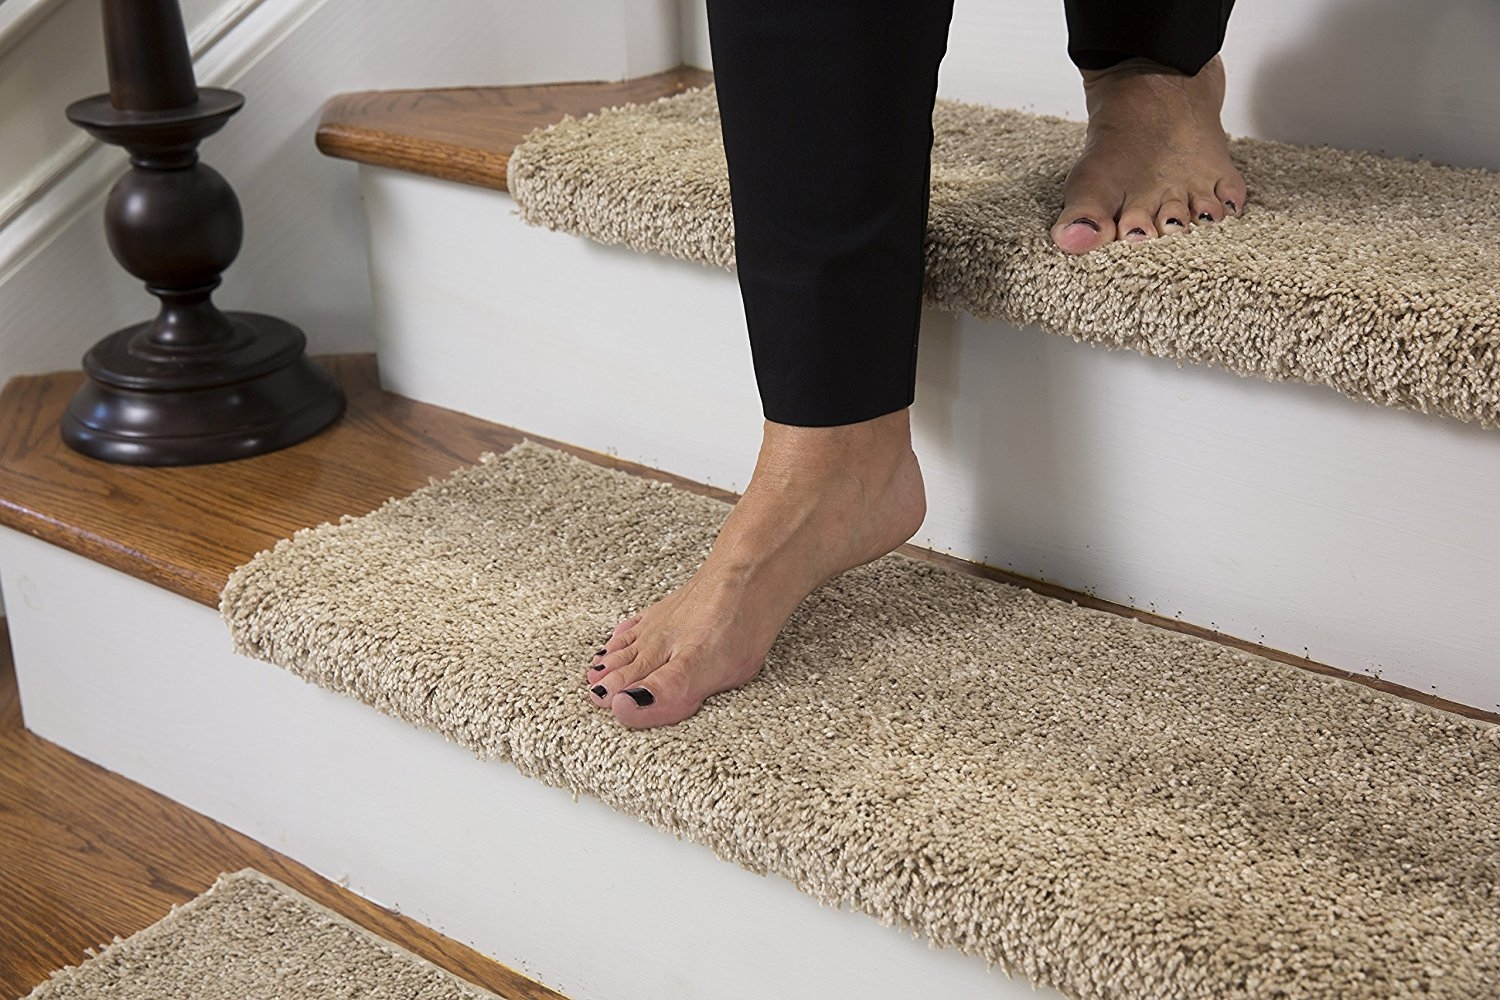 Amazon Caprice Bullnose Carpet Stair Tread With Adhesive Within Bullnose Stair Tread Carpets (Image 2 of 15)